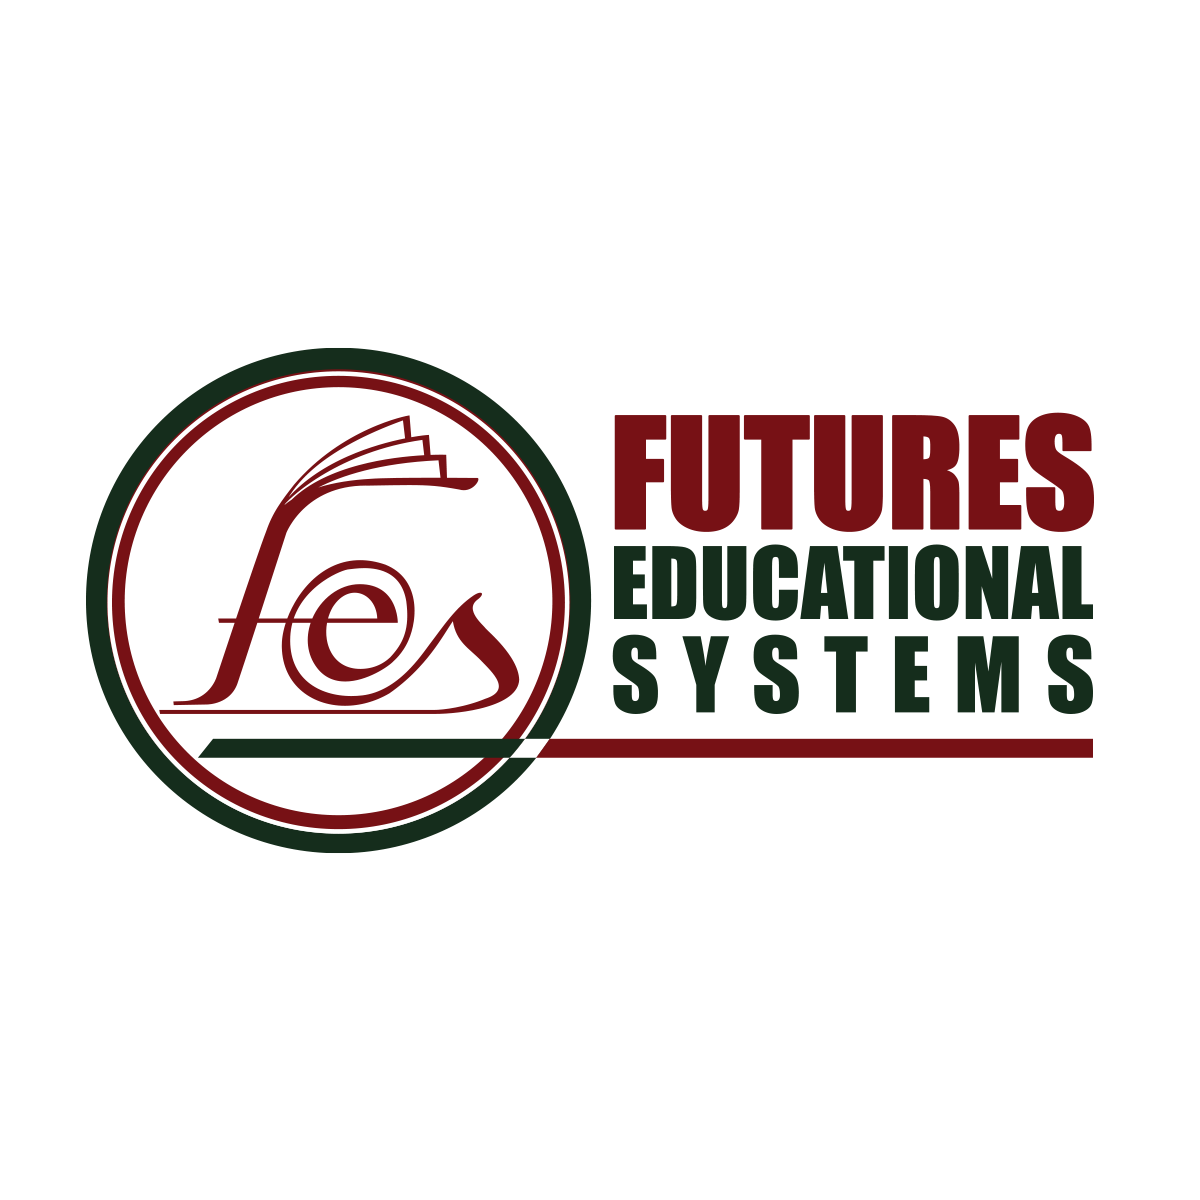 Futures Educational Systems